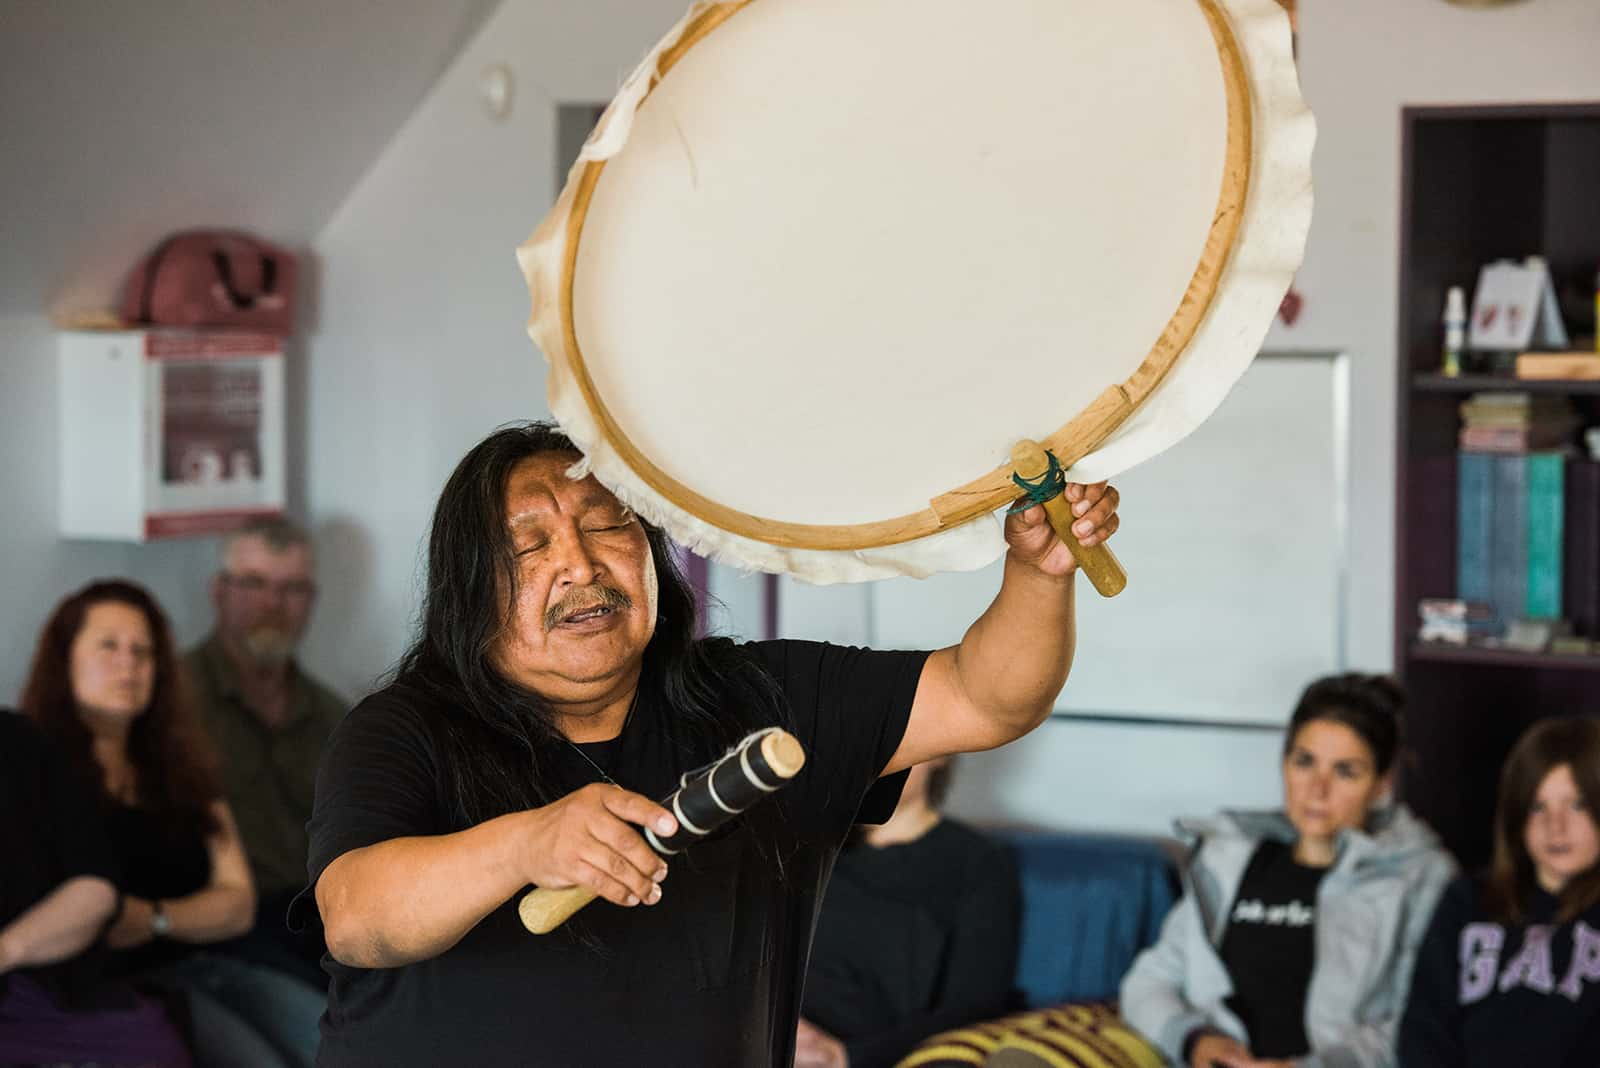 Inuk artist and drummer Mathew Nuqingaq demonstrates the 'quilat', a traditional inuit drum, during an Inuit drum dance Workshop at the Alianait Arts Festival in Iqaluit, Nunavut, Canada. July 2, 2017.